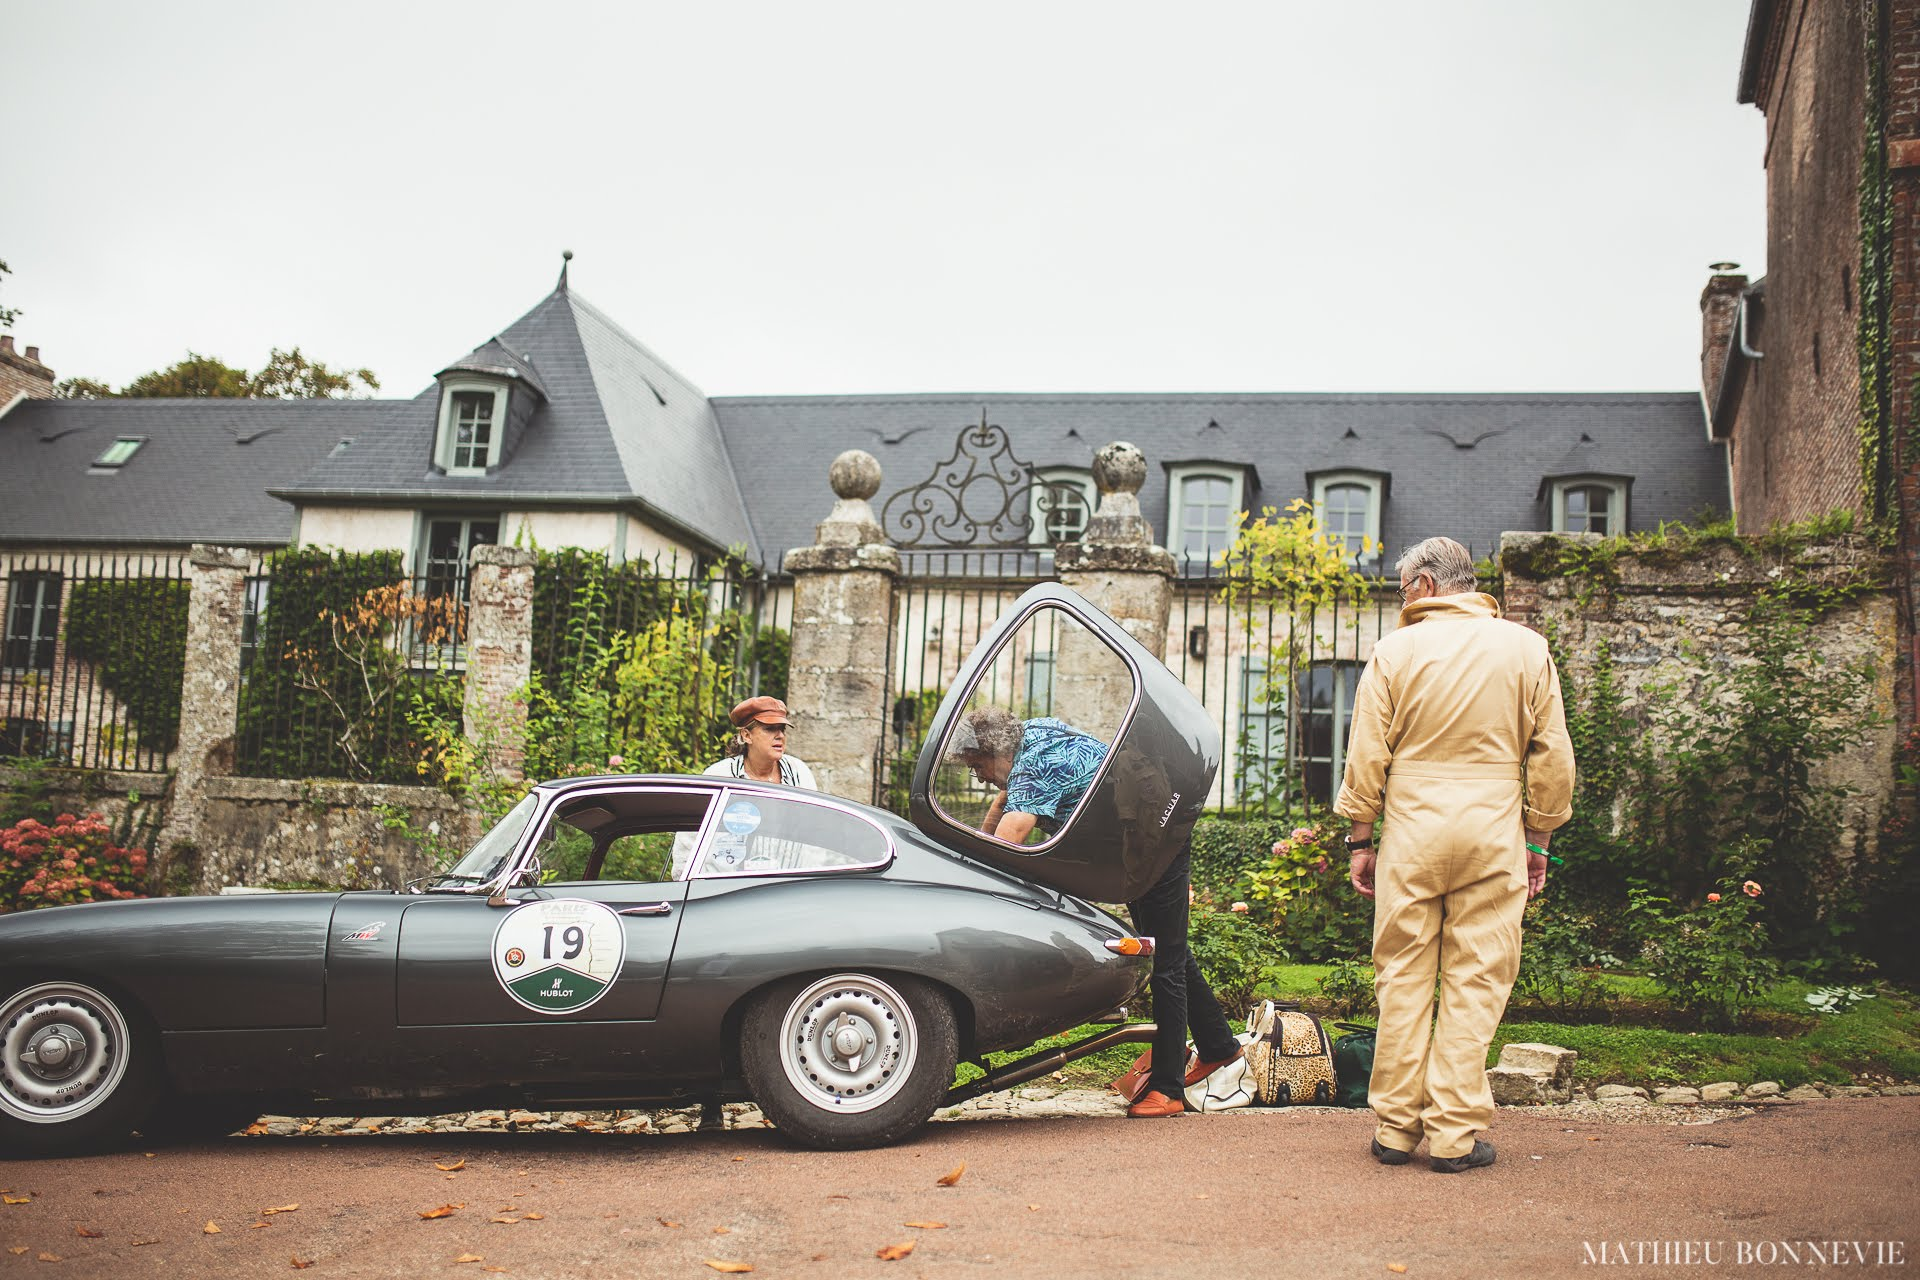 139-goodwoodrevival18-00812-copyright-Mathieu-Bonnevie-1920